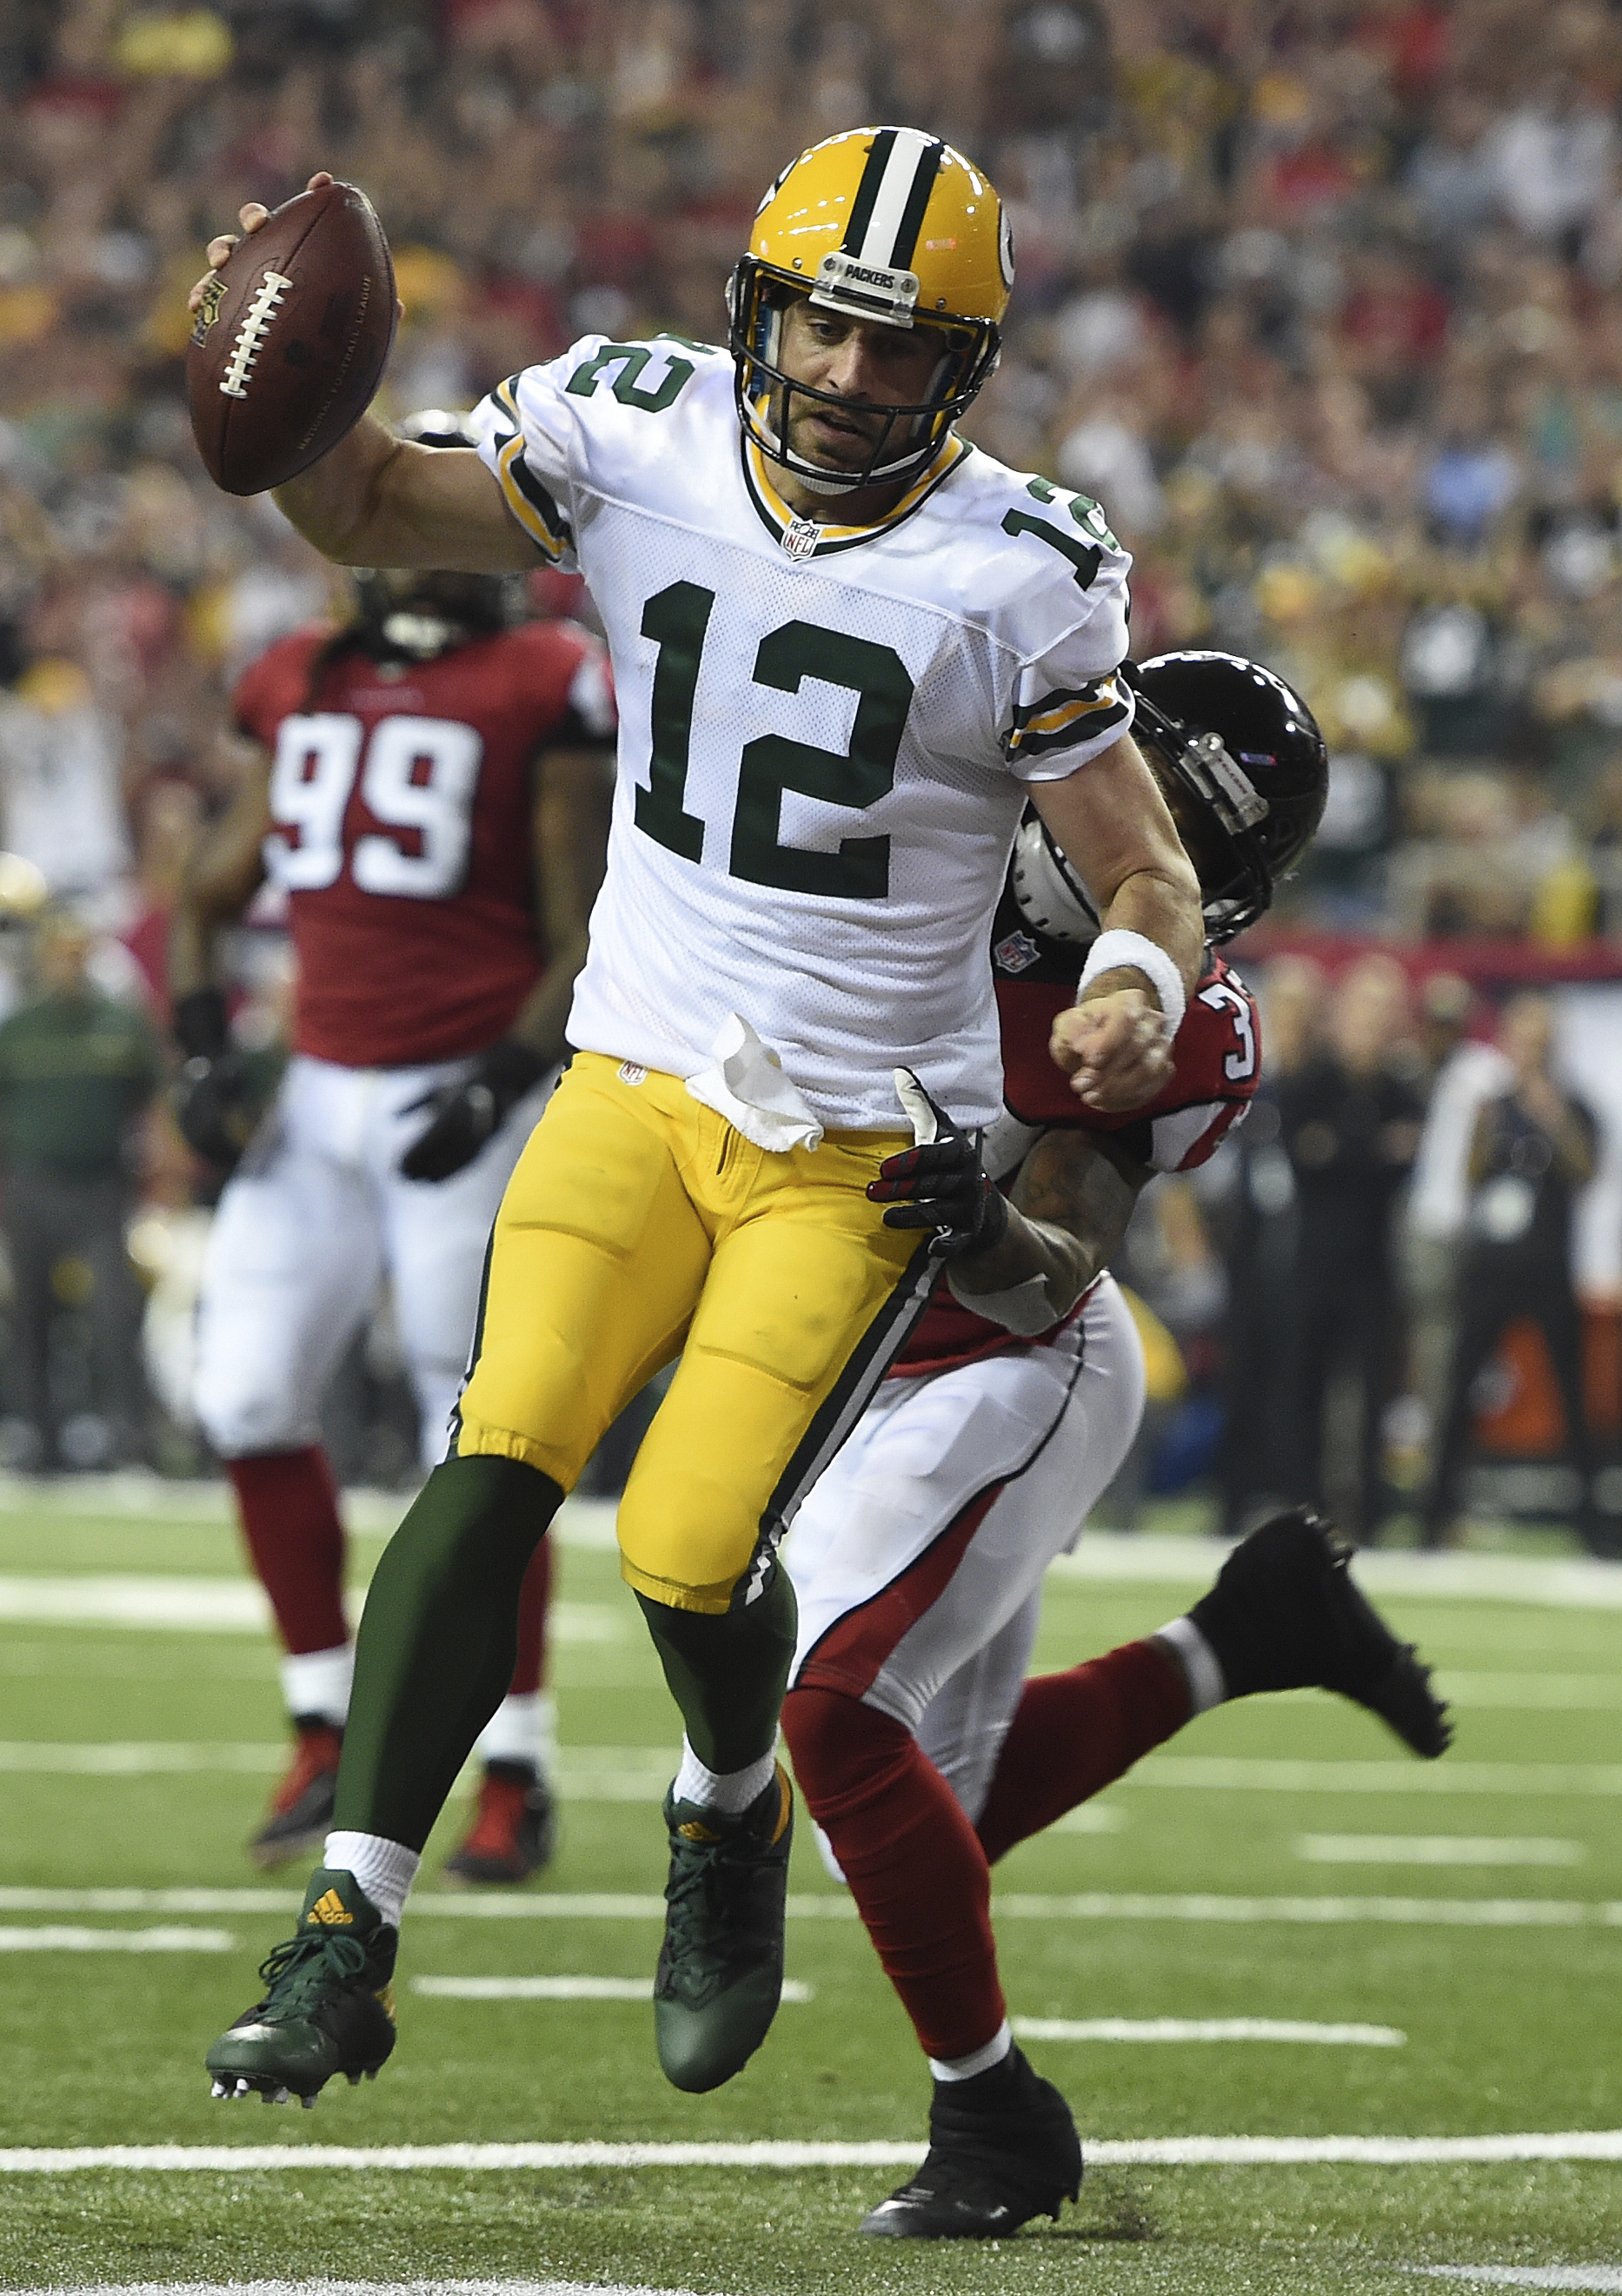 Green Bay Packers quarterback Aaron Rodgers (12) runs into the end zone for an extra point against Atlanta Falcons free safety Ricardo Allen (37) during the second of an NFL football game, Sunday, Oct. 30, 2016, in Atlanta. (AP Photo/Rainier Ehrhardt)